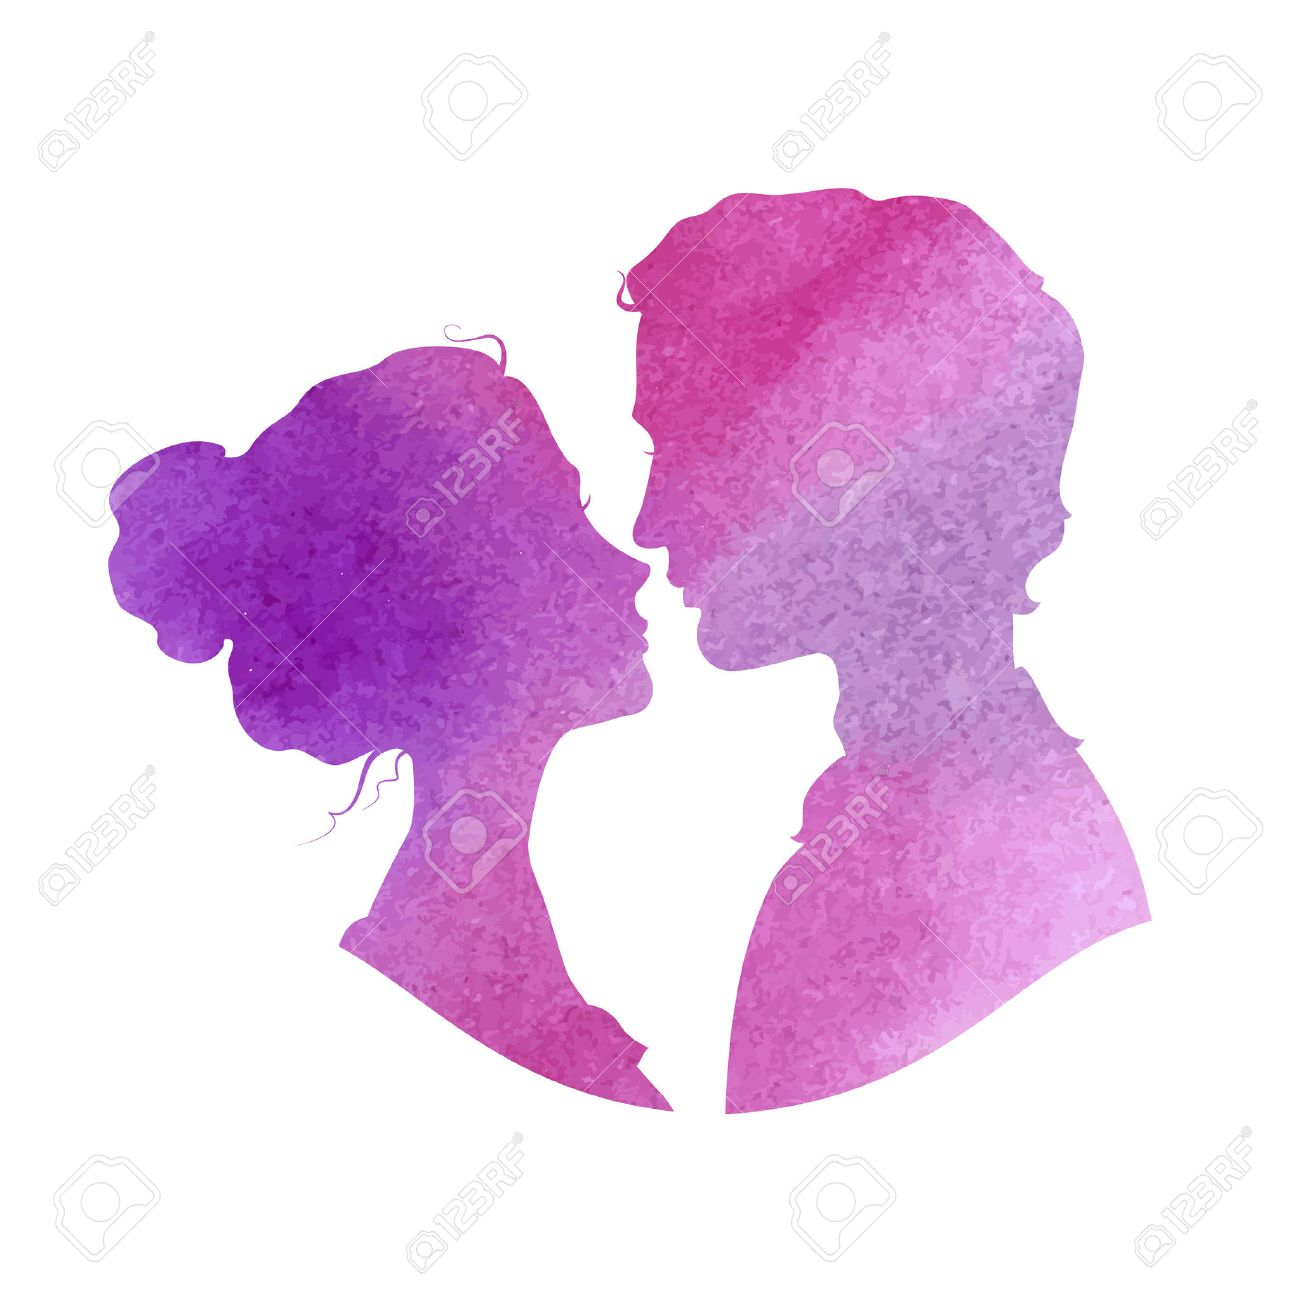 Profile silhouettes of man and woman. - 38747777